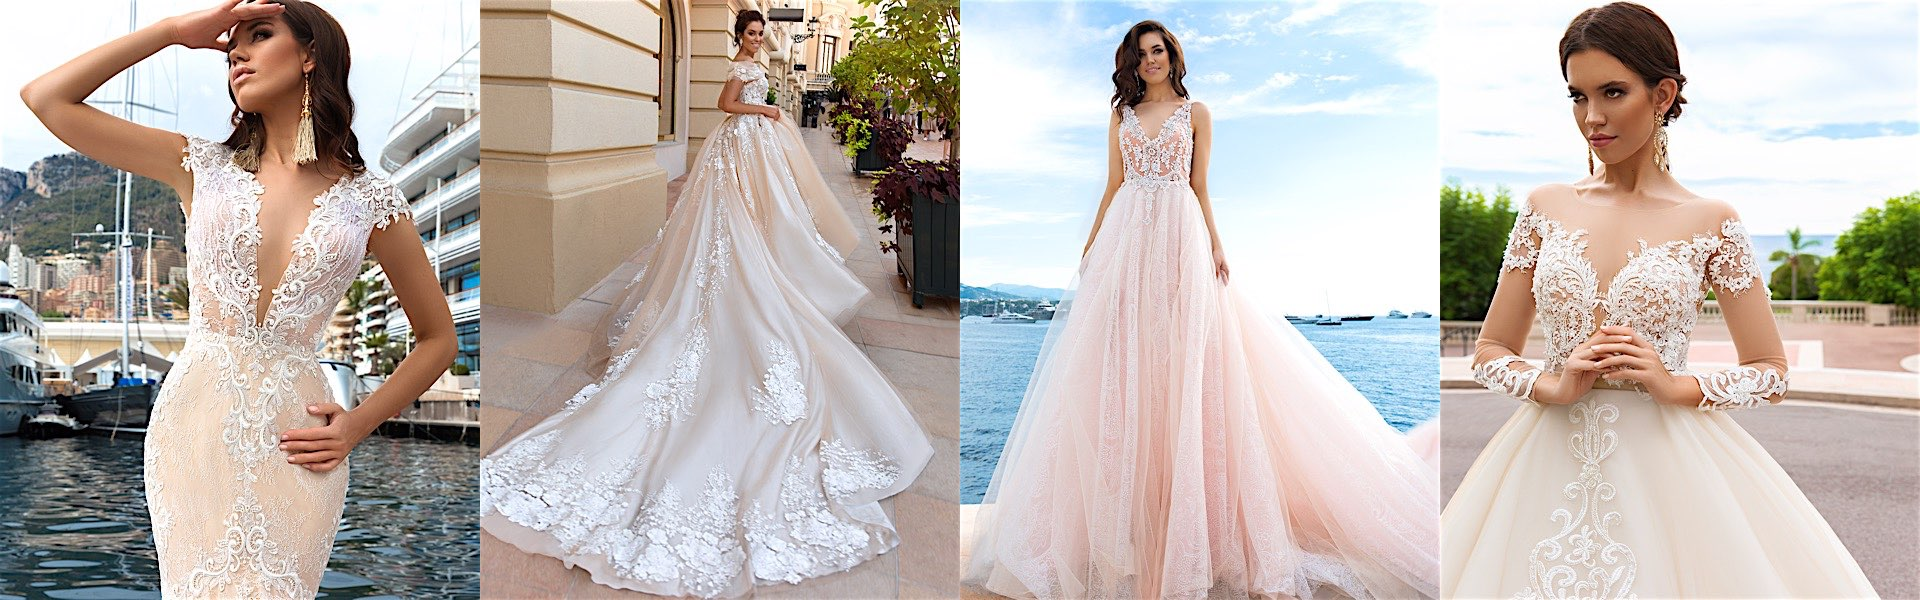 Mesmerizing 2017 Crystal Design Wedding Dresses Modwedding